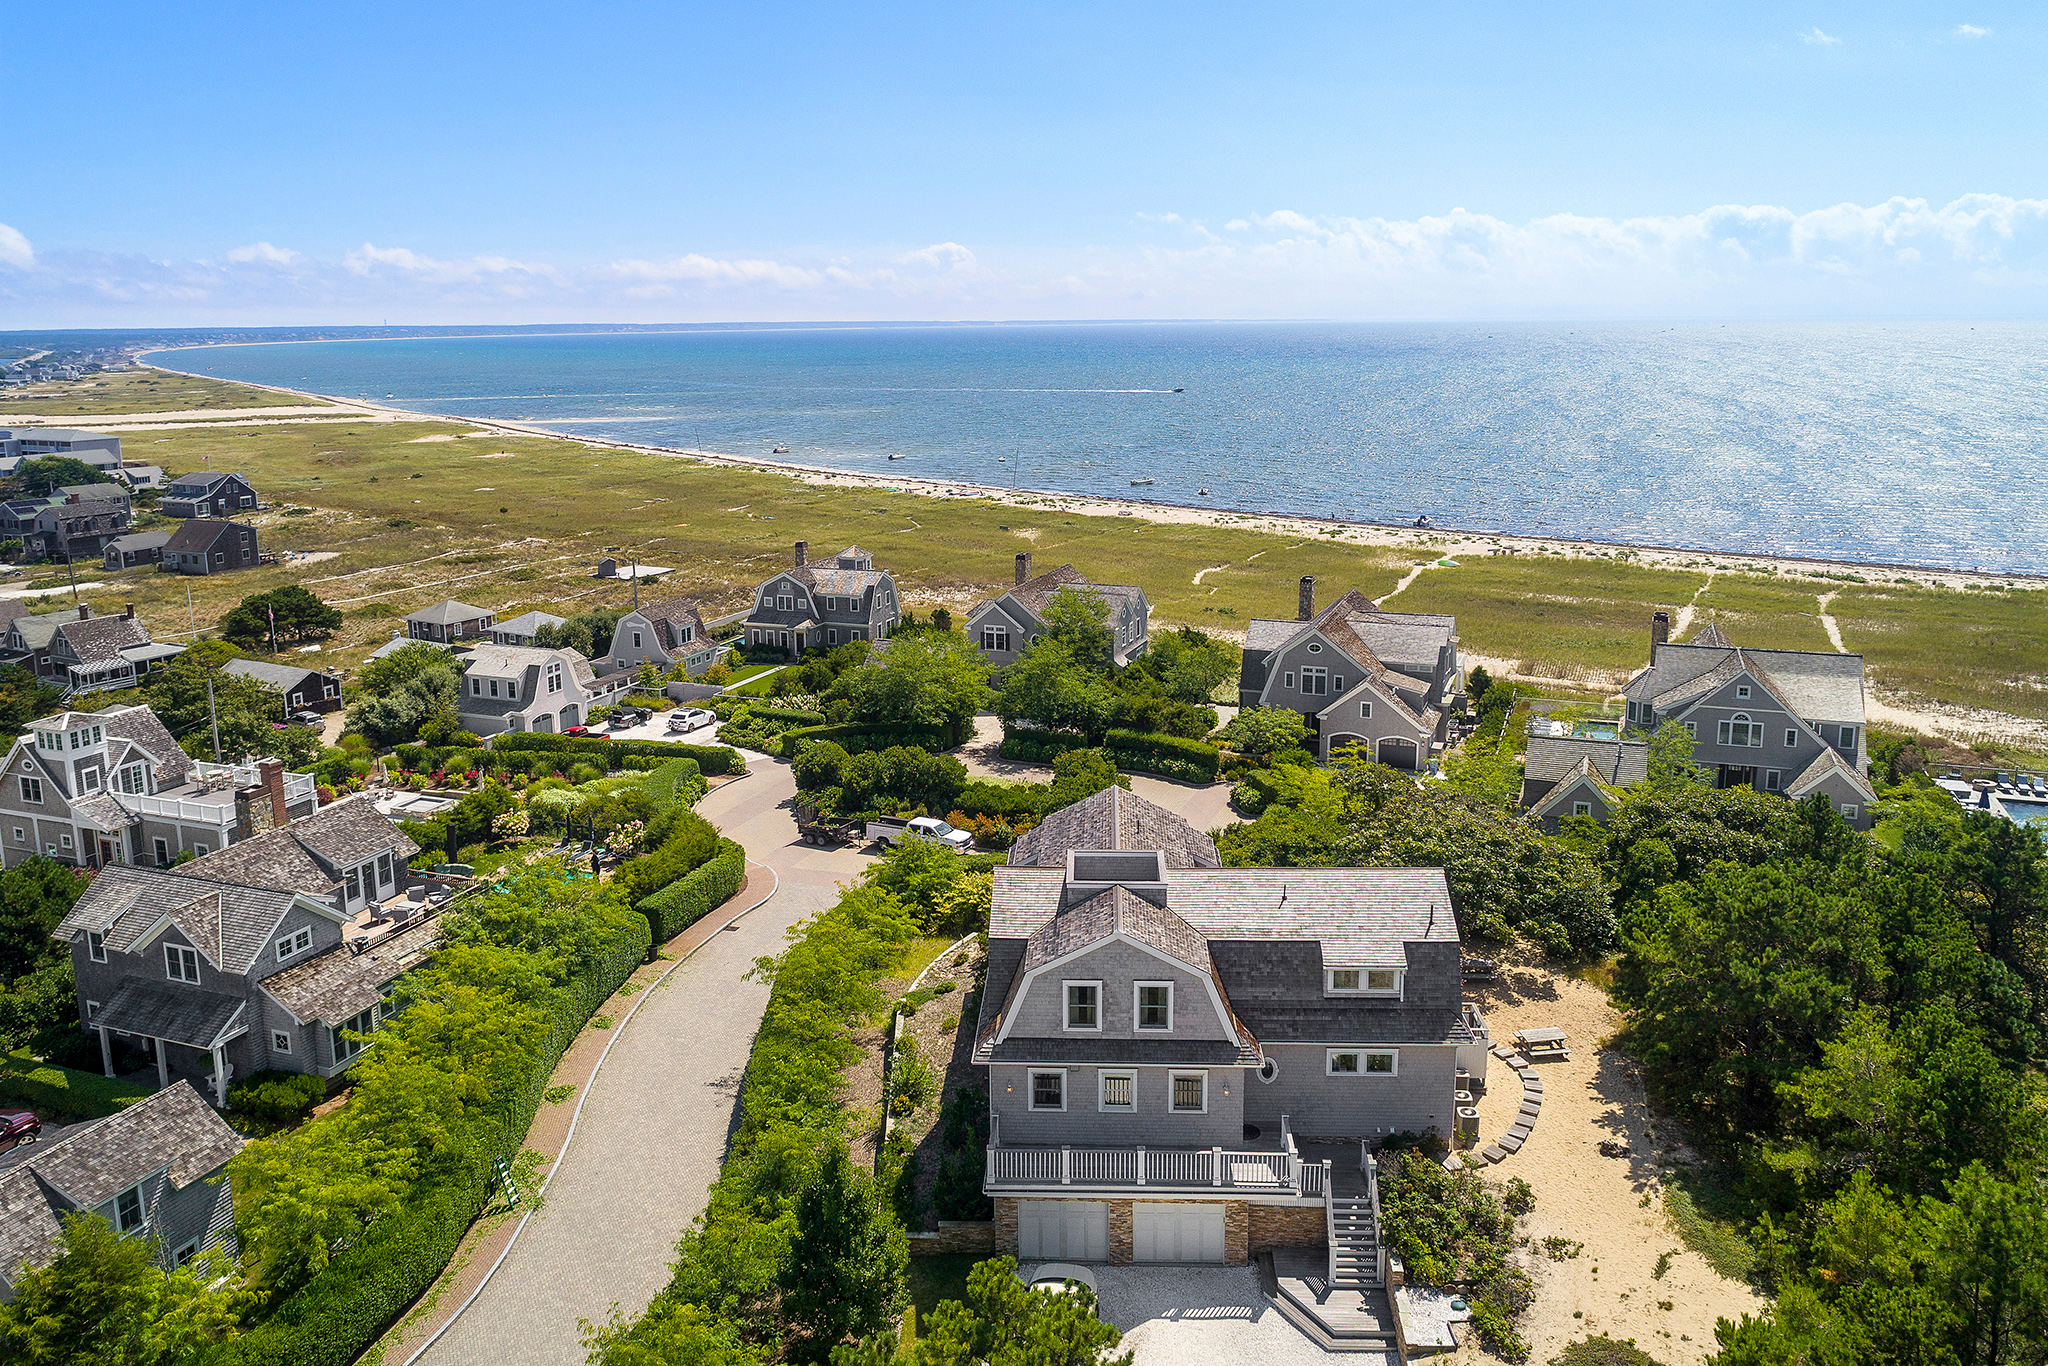 2 Harbour Drive Provincetown, Ma 02657 | MLS # 21906230 | Listed by Griffin Realty Group